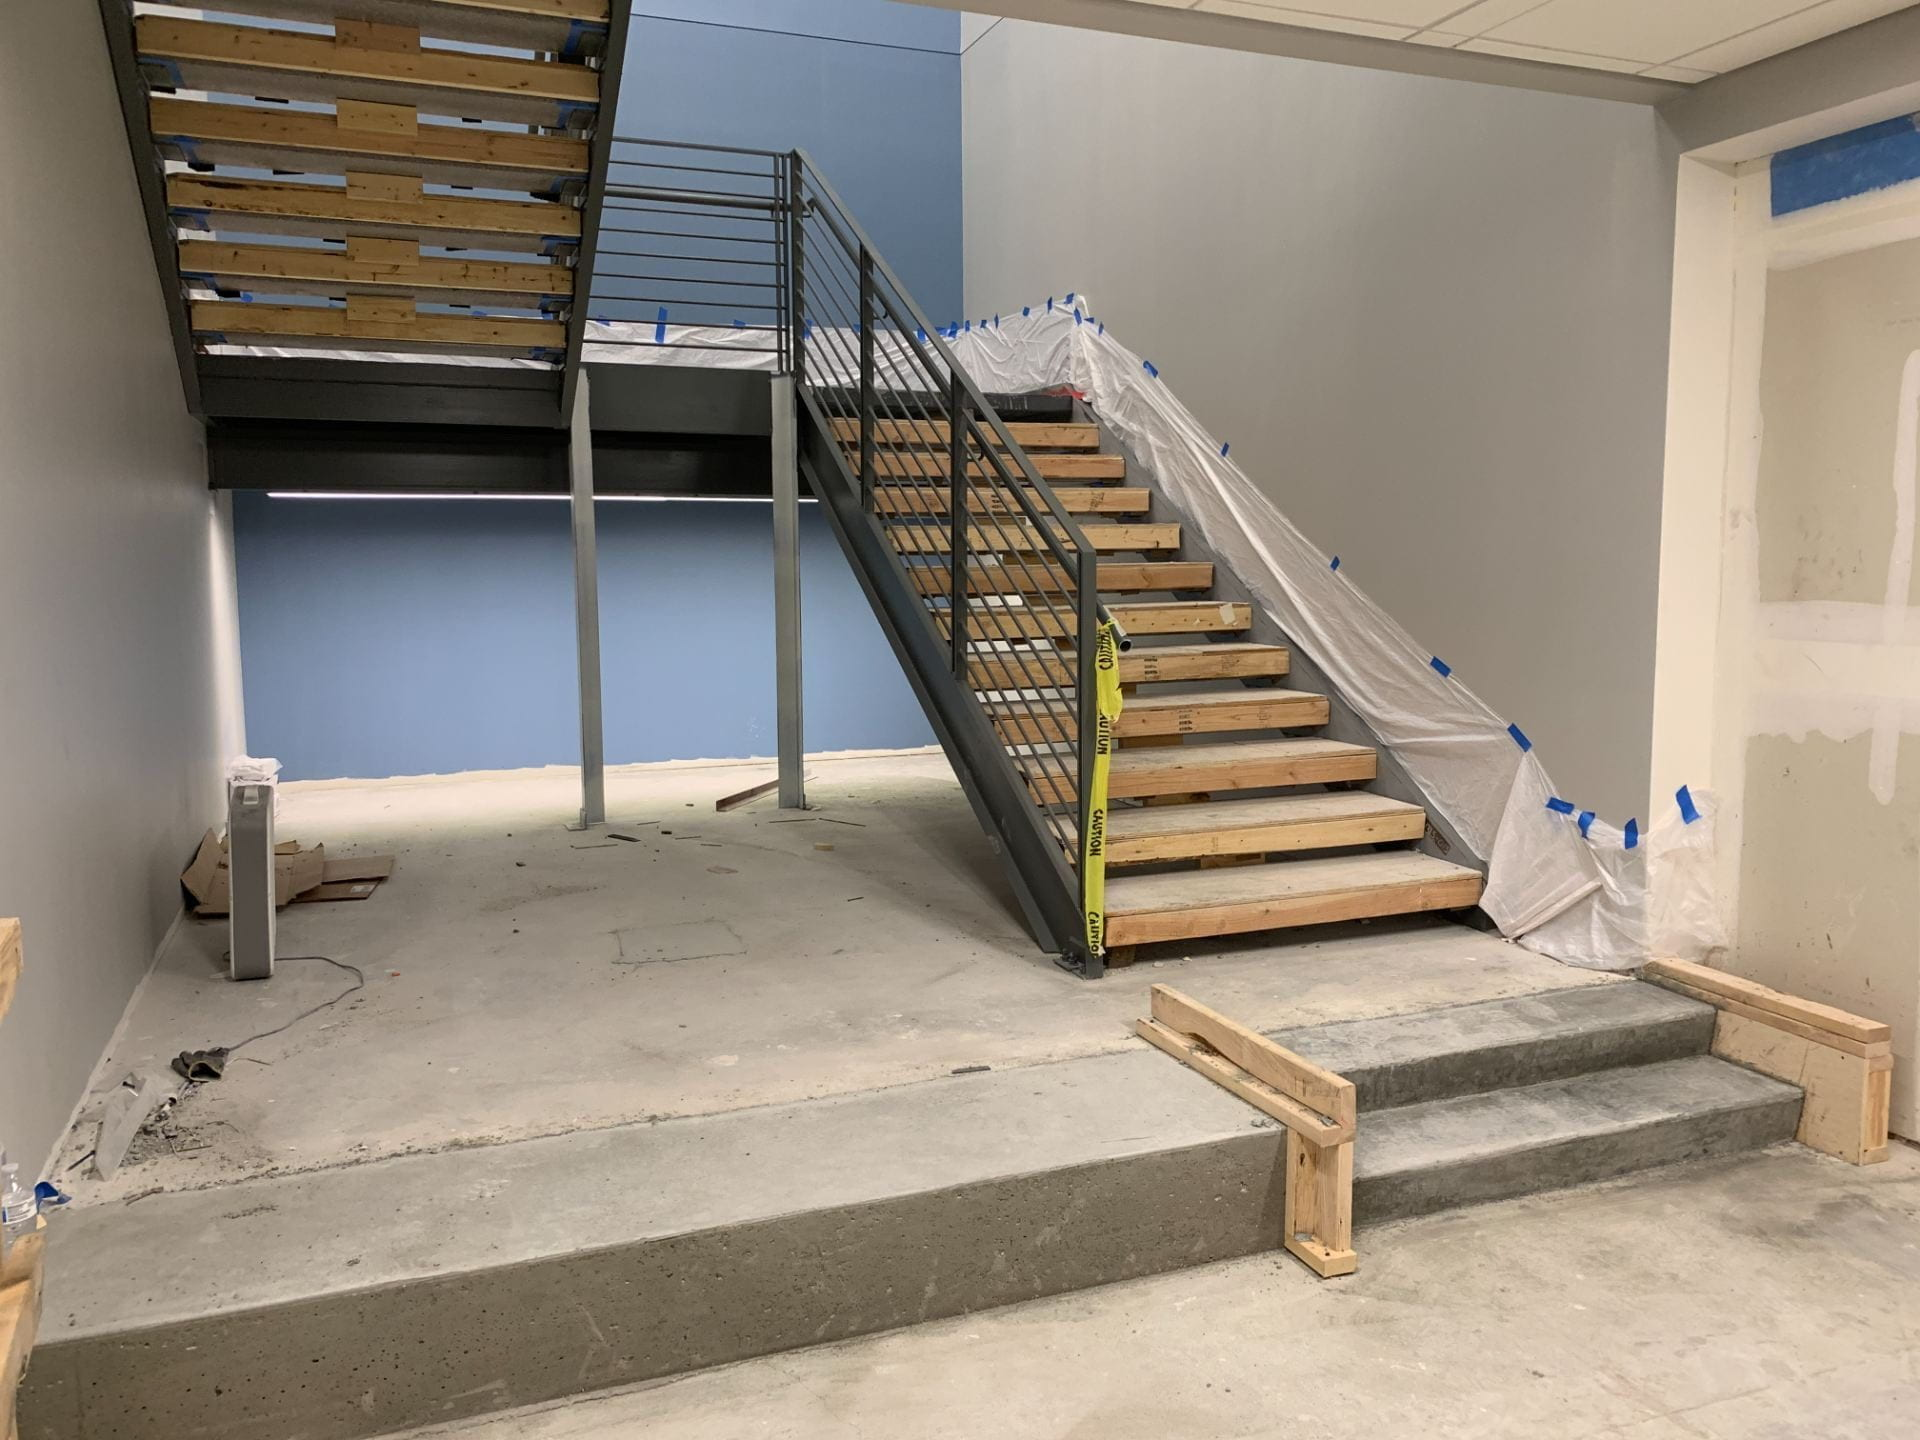 The stairs between the first and second floors of the Sunderland Foundation Innovation Lab are covered with wood temporarily.